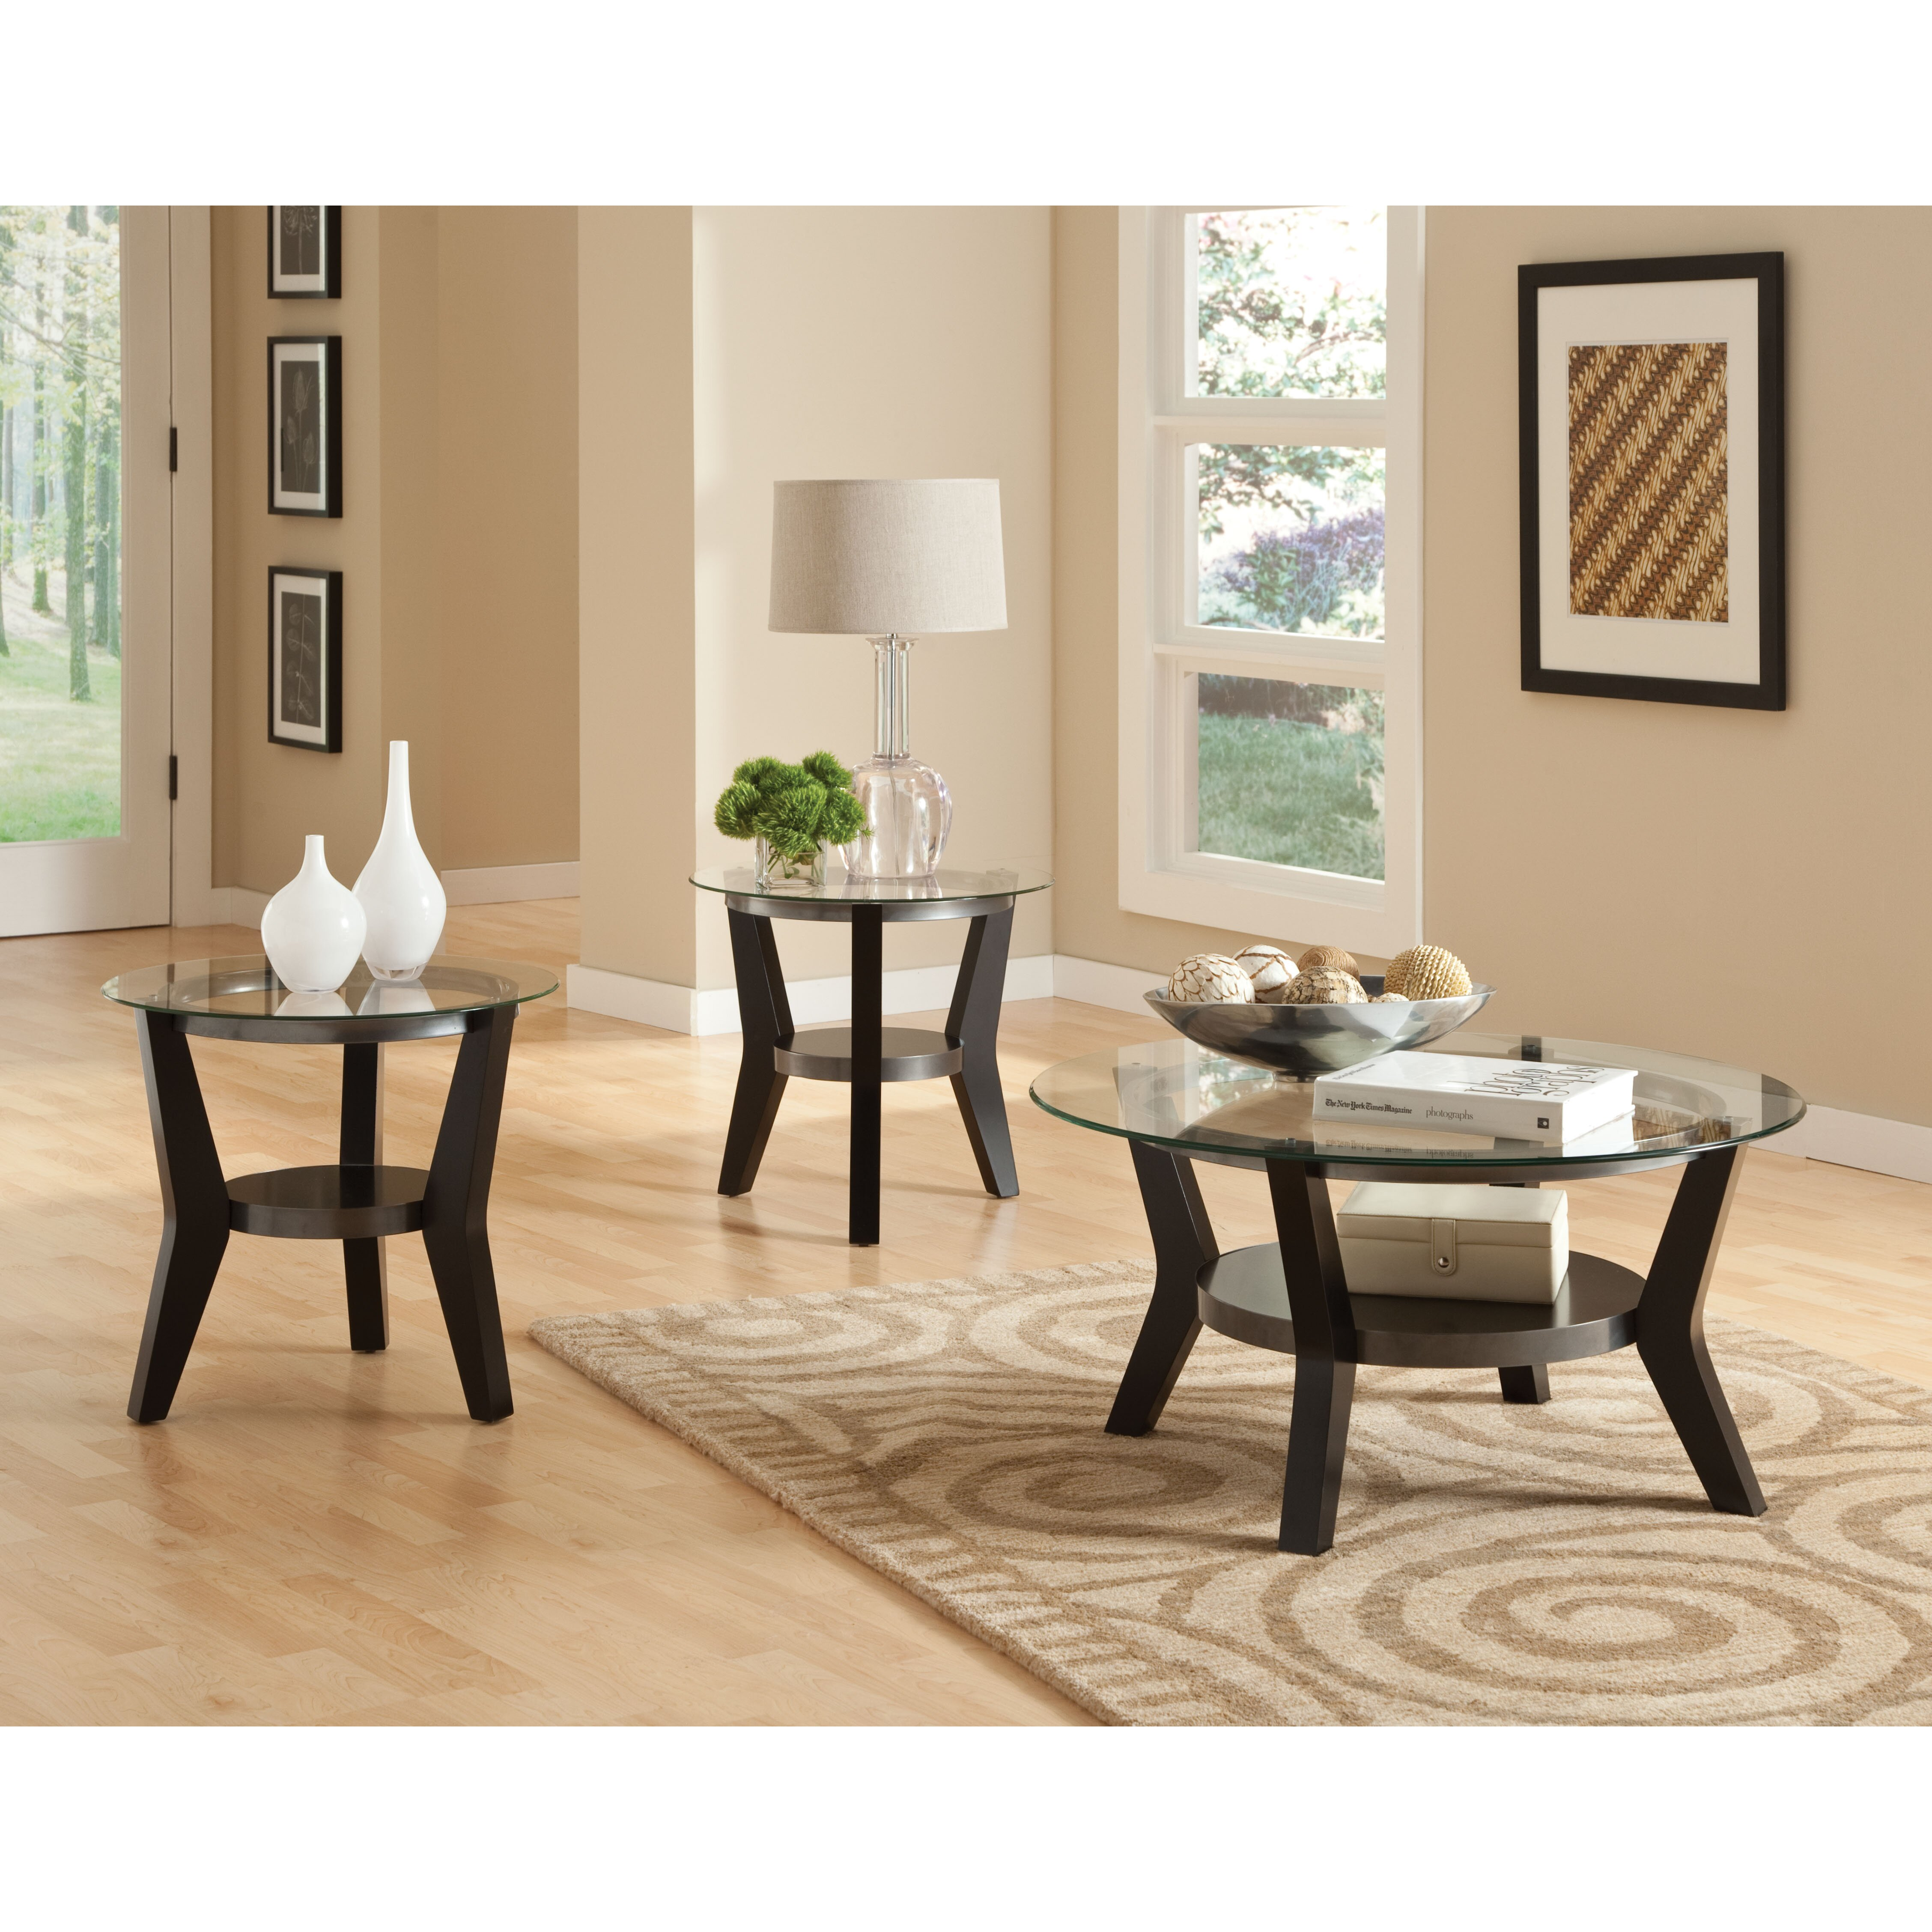 3 Piece Living Room Table Set Standard Furniture Orbit 3 Piece Coffee Table Set Reviews Wayfair